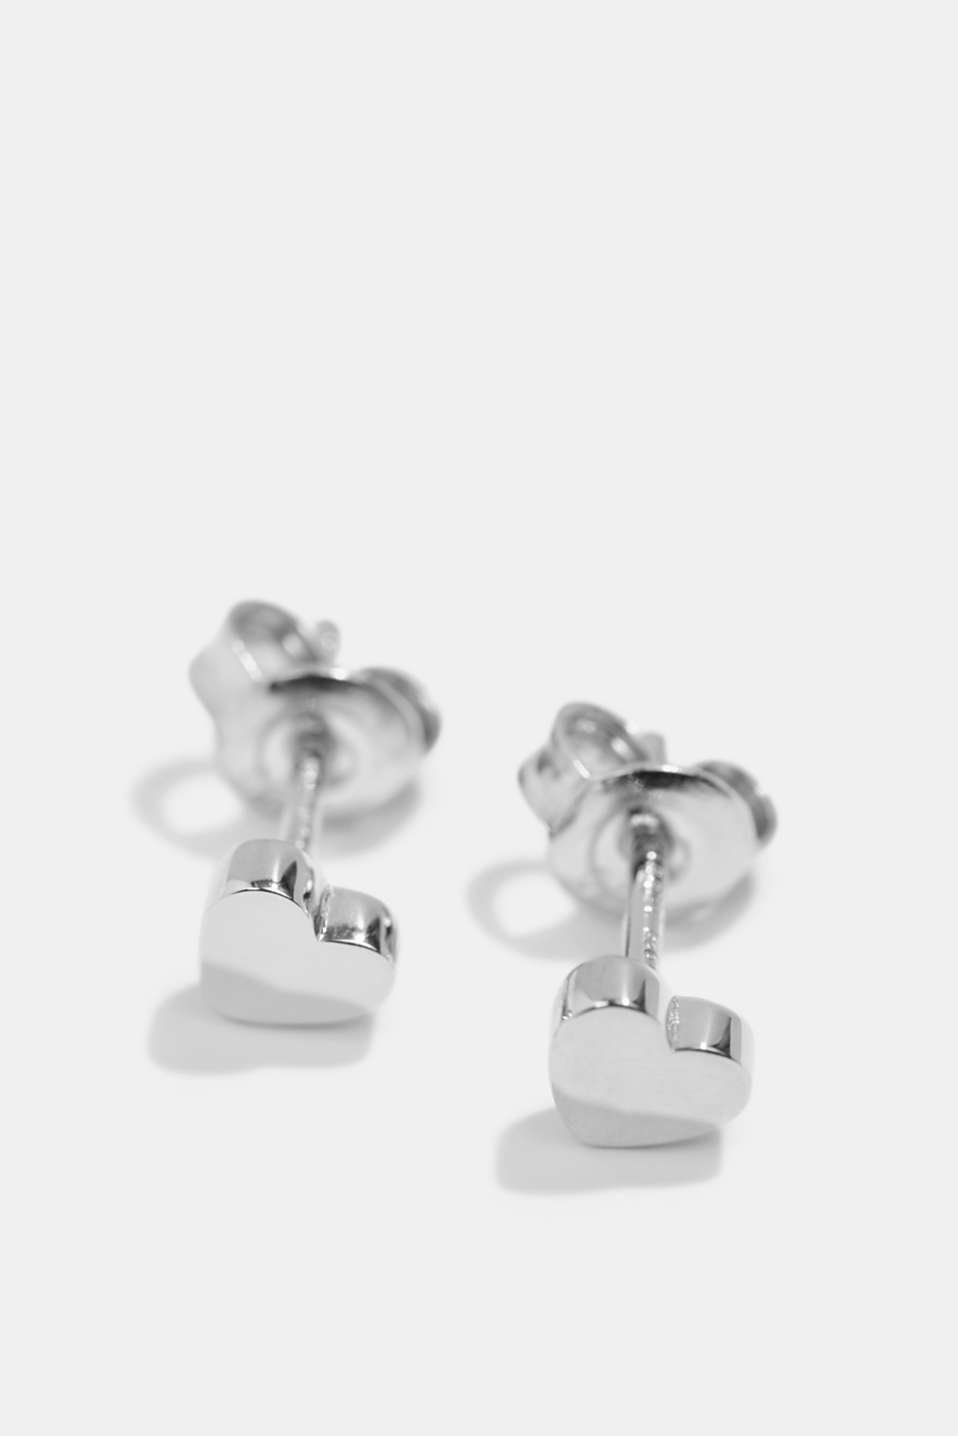 Esprit - Heart-shaped stud earrings in sterling silver